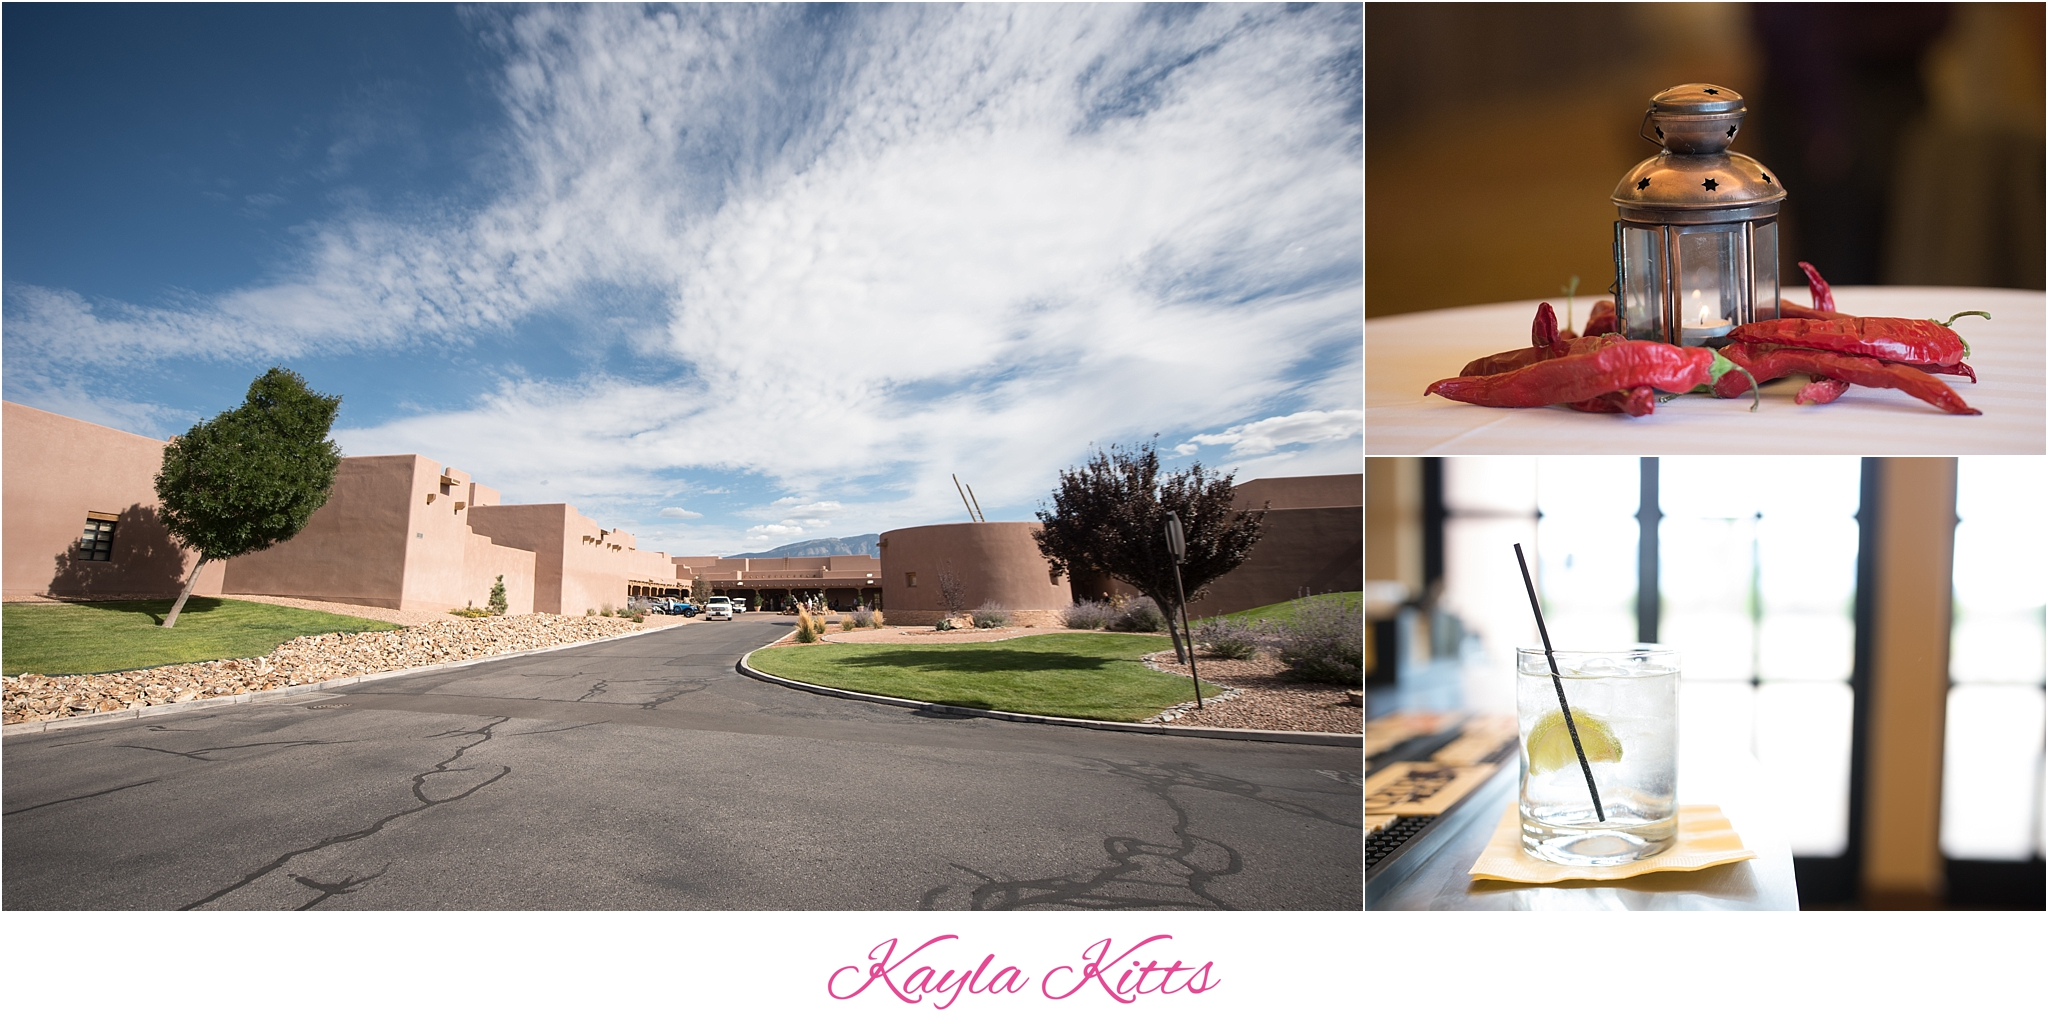 kayla kitts photography - albuquerque wedding photographer - albuquerque wedding photography - albuquerque venue - hyatt tamaya - hyatt tamaya wedding - new mexico wedding photographer_0039.jpg